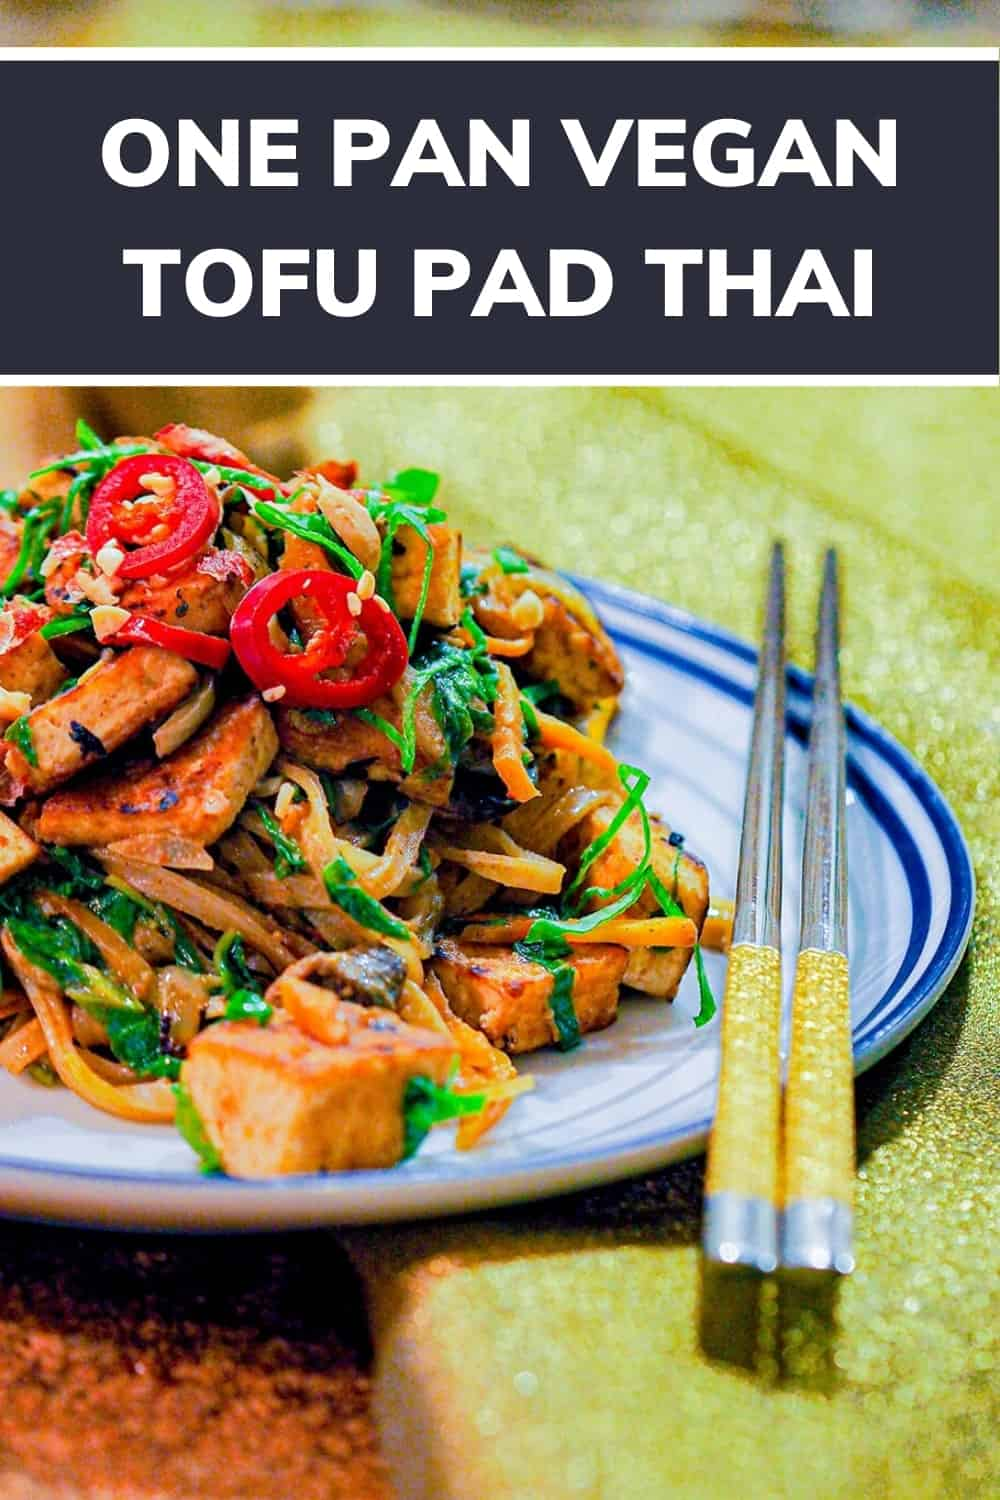 Vegan pad Thai Recipe with Tofu | one pot pad thai, pad thai recipe, pad thai recipe healthy, pad thai vegetarian, pad thai noodles, pad thai recipe vegetarian, thai pad noodles, tofu pad thai, pad thai healthy, veggie pad thai recipe, healthy pad thai recipe, vegan pad thai, vegan pad thai recipe, pad thai tofu, pad thai recipe easy, pad thai vegan, easy pad thai recipe, pad thai recipe tofu, easy vegan, dairy free, easy recipe #30minutesmeals #easyrecipe #thaifood #foodrecipe #veganrecipe